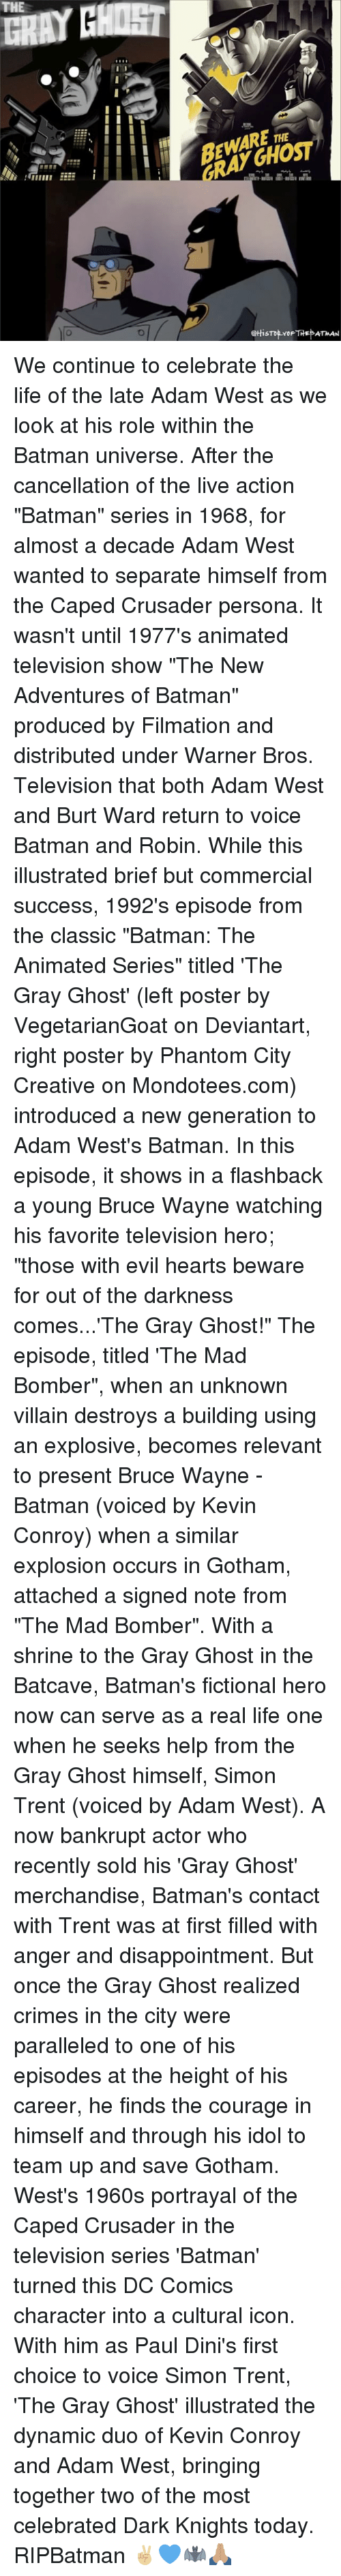 """batcave: THE  ARE  ettiSToproF THE ATMAN We continue to celebrate the life of the late Adam West as we look at his role within the Batman universe. After the cancellation of the live action """"Batman"""" series in 1968, for almost a decade Adam West wanted to separate himself from the Caped Crusader persona. It wasn't until 1977's animated television show """"The New Adventures of Batman"""" produced by Filmation and distributed under Warner Bros. Television that both Adam West and Burt Ward return to voice Batman and Robin. While this illustrated brief but commercial success, 1992's episode from the classic """"Batman: The Animated Series"""" titled 'The Gray Ghost' (left poster by VegetarianGoat on Deviantart, right poster by Phantom City Creative on Mondotees.com) introduced a new generation to Adam West's Batman. In this episode, it shows in a flashback a young Bruce Wayne watching his favorite television hero; """"those with evil hearts beware for out of the darkness comes...'The Gray Ghost!"""" The episode, titled 'The Mad Bomber"""", when an unknown villain destroys a building using an explosive, becomes relevant to present Bruce Wayne - Batman (voiced by Kevin Conroy) when a similar explosion occurs in Gotham, attached a signed note from """"The Mad Bomber"""". With a shrine to the Gray Ghost in the Batcave, Batman's fictional hero now can serve as a real life one when he seeks help from the Gray Ghost himself, Simon Trent (voiced by Adam West). A now bankrupt actor who recently sold his 'Gray Ghost' merchandise, Batman's contact with Trent was at first filled with anger and disappointment. But once the Gray Ghost realized crimes in the city were paralleled to one of his episodes at the height of his career, he finds the courage in himself and through his idol to team up and save Gotham. West's 1960s portrayal of the Caped Crusader in the television series 'Batman' turned this DC Comics character into a cultural icon. With him as Paul Dini's first choice to voice Simon Trent, 'The Gray Gho"""